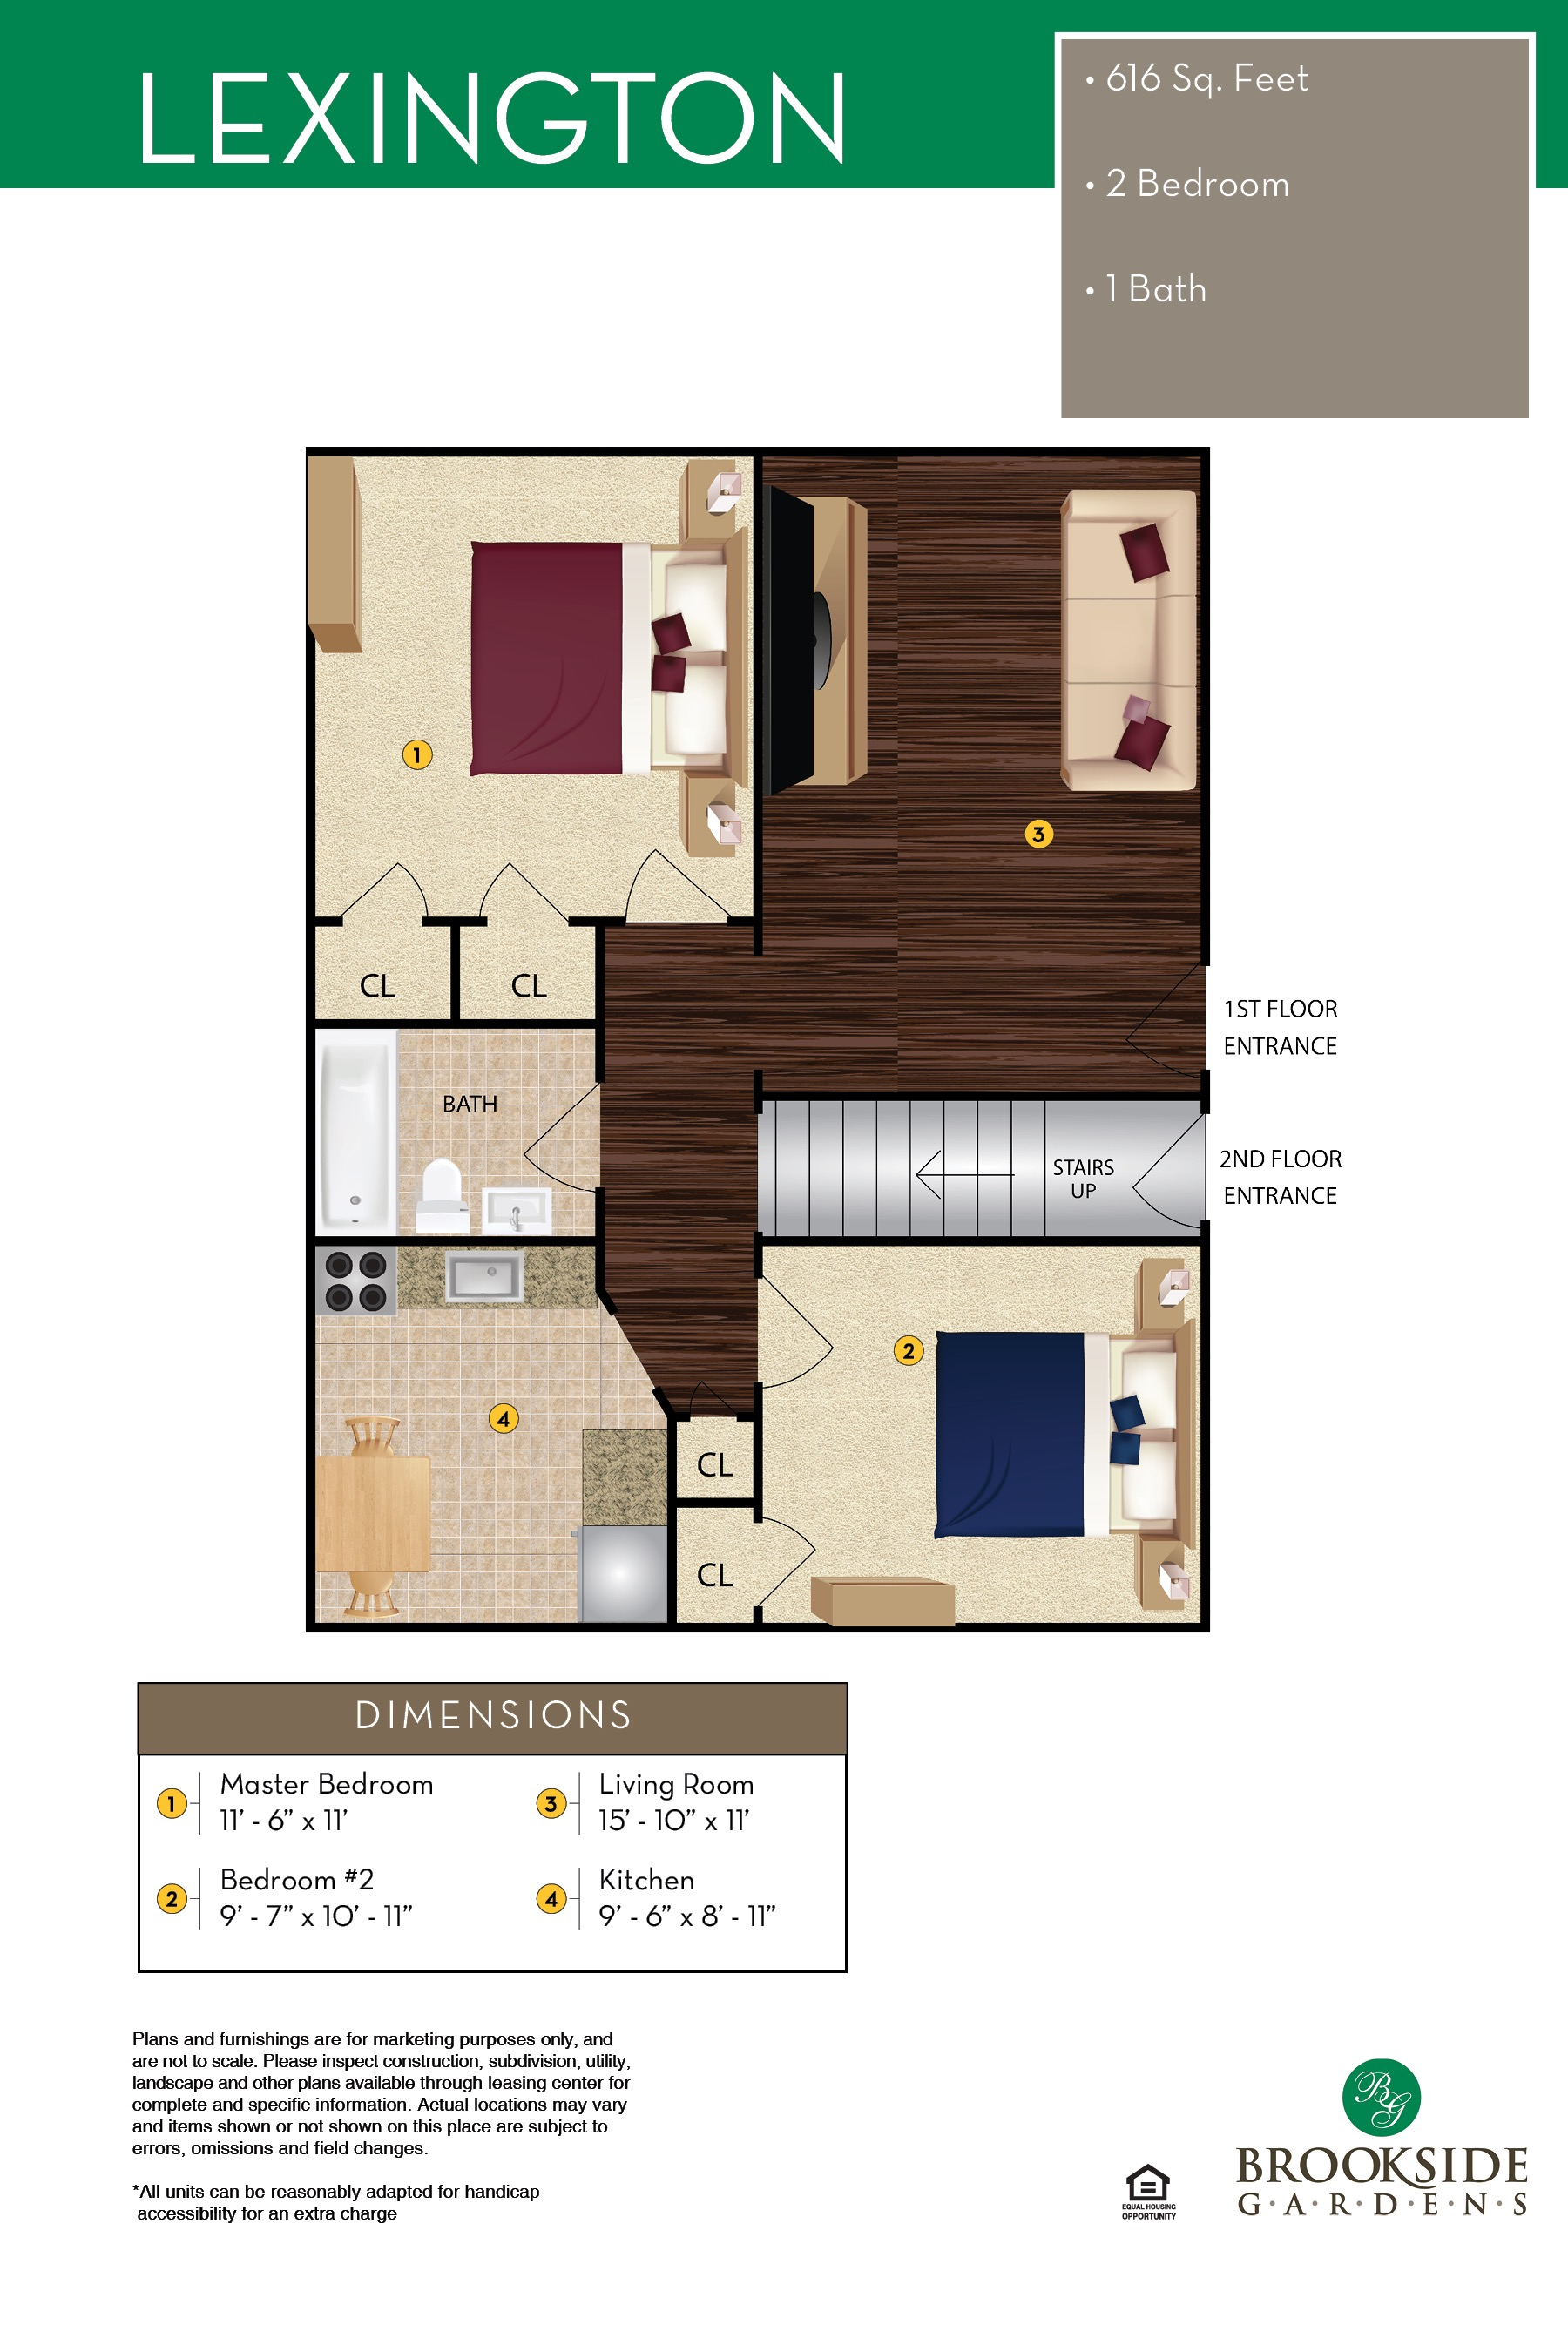 Brookside Gardens Lexington Floor Plans